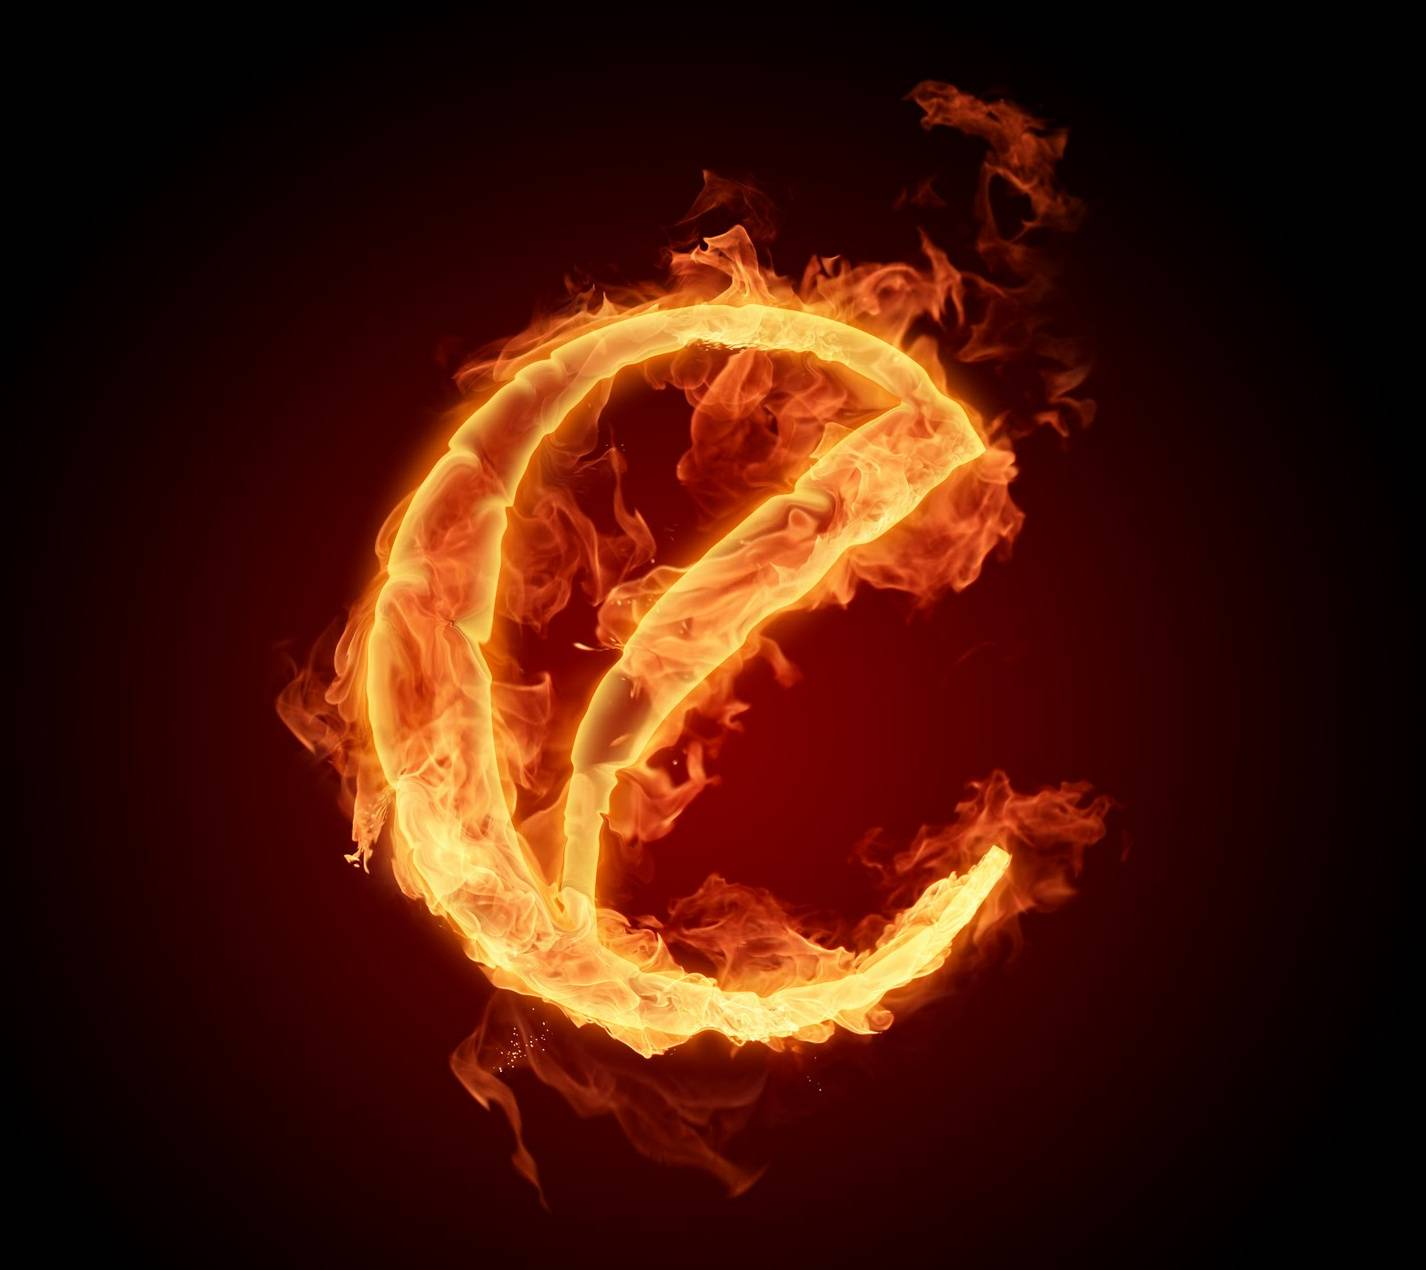 Letter E In Fire Hd Wallpaper By Mr Lazy 48 Free On